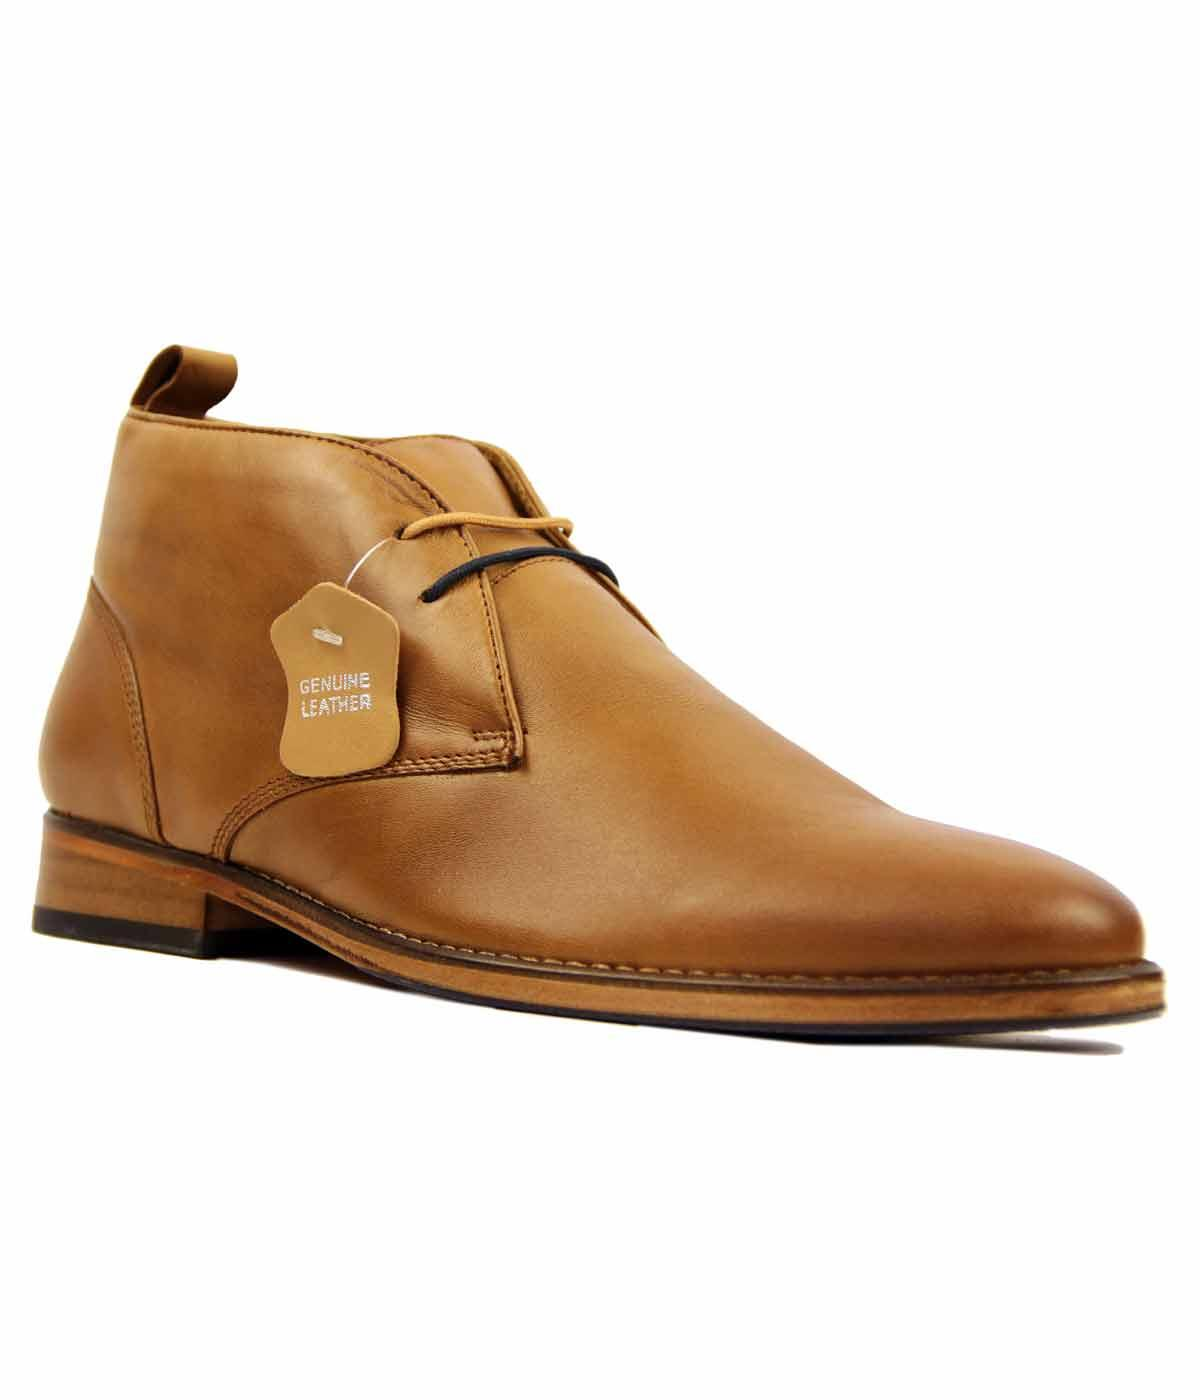 Kingston Leather PAOLO VANDINI Mod Desert Boots T